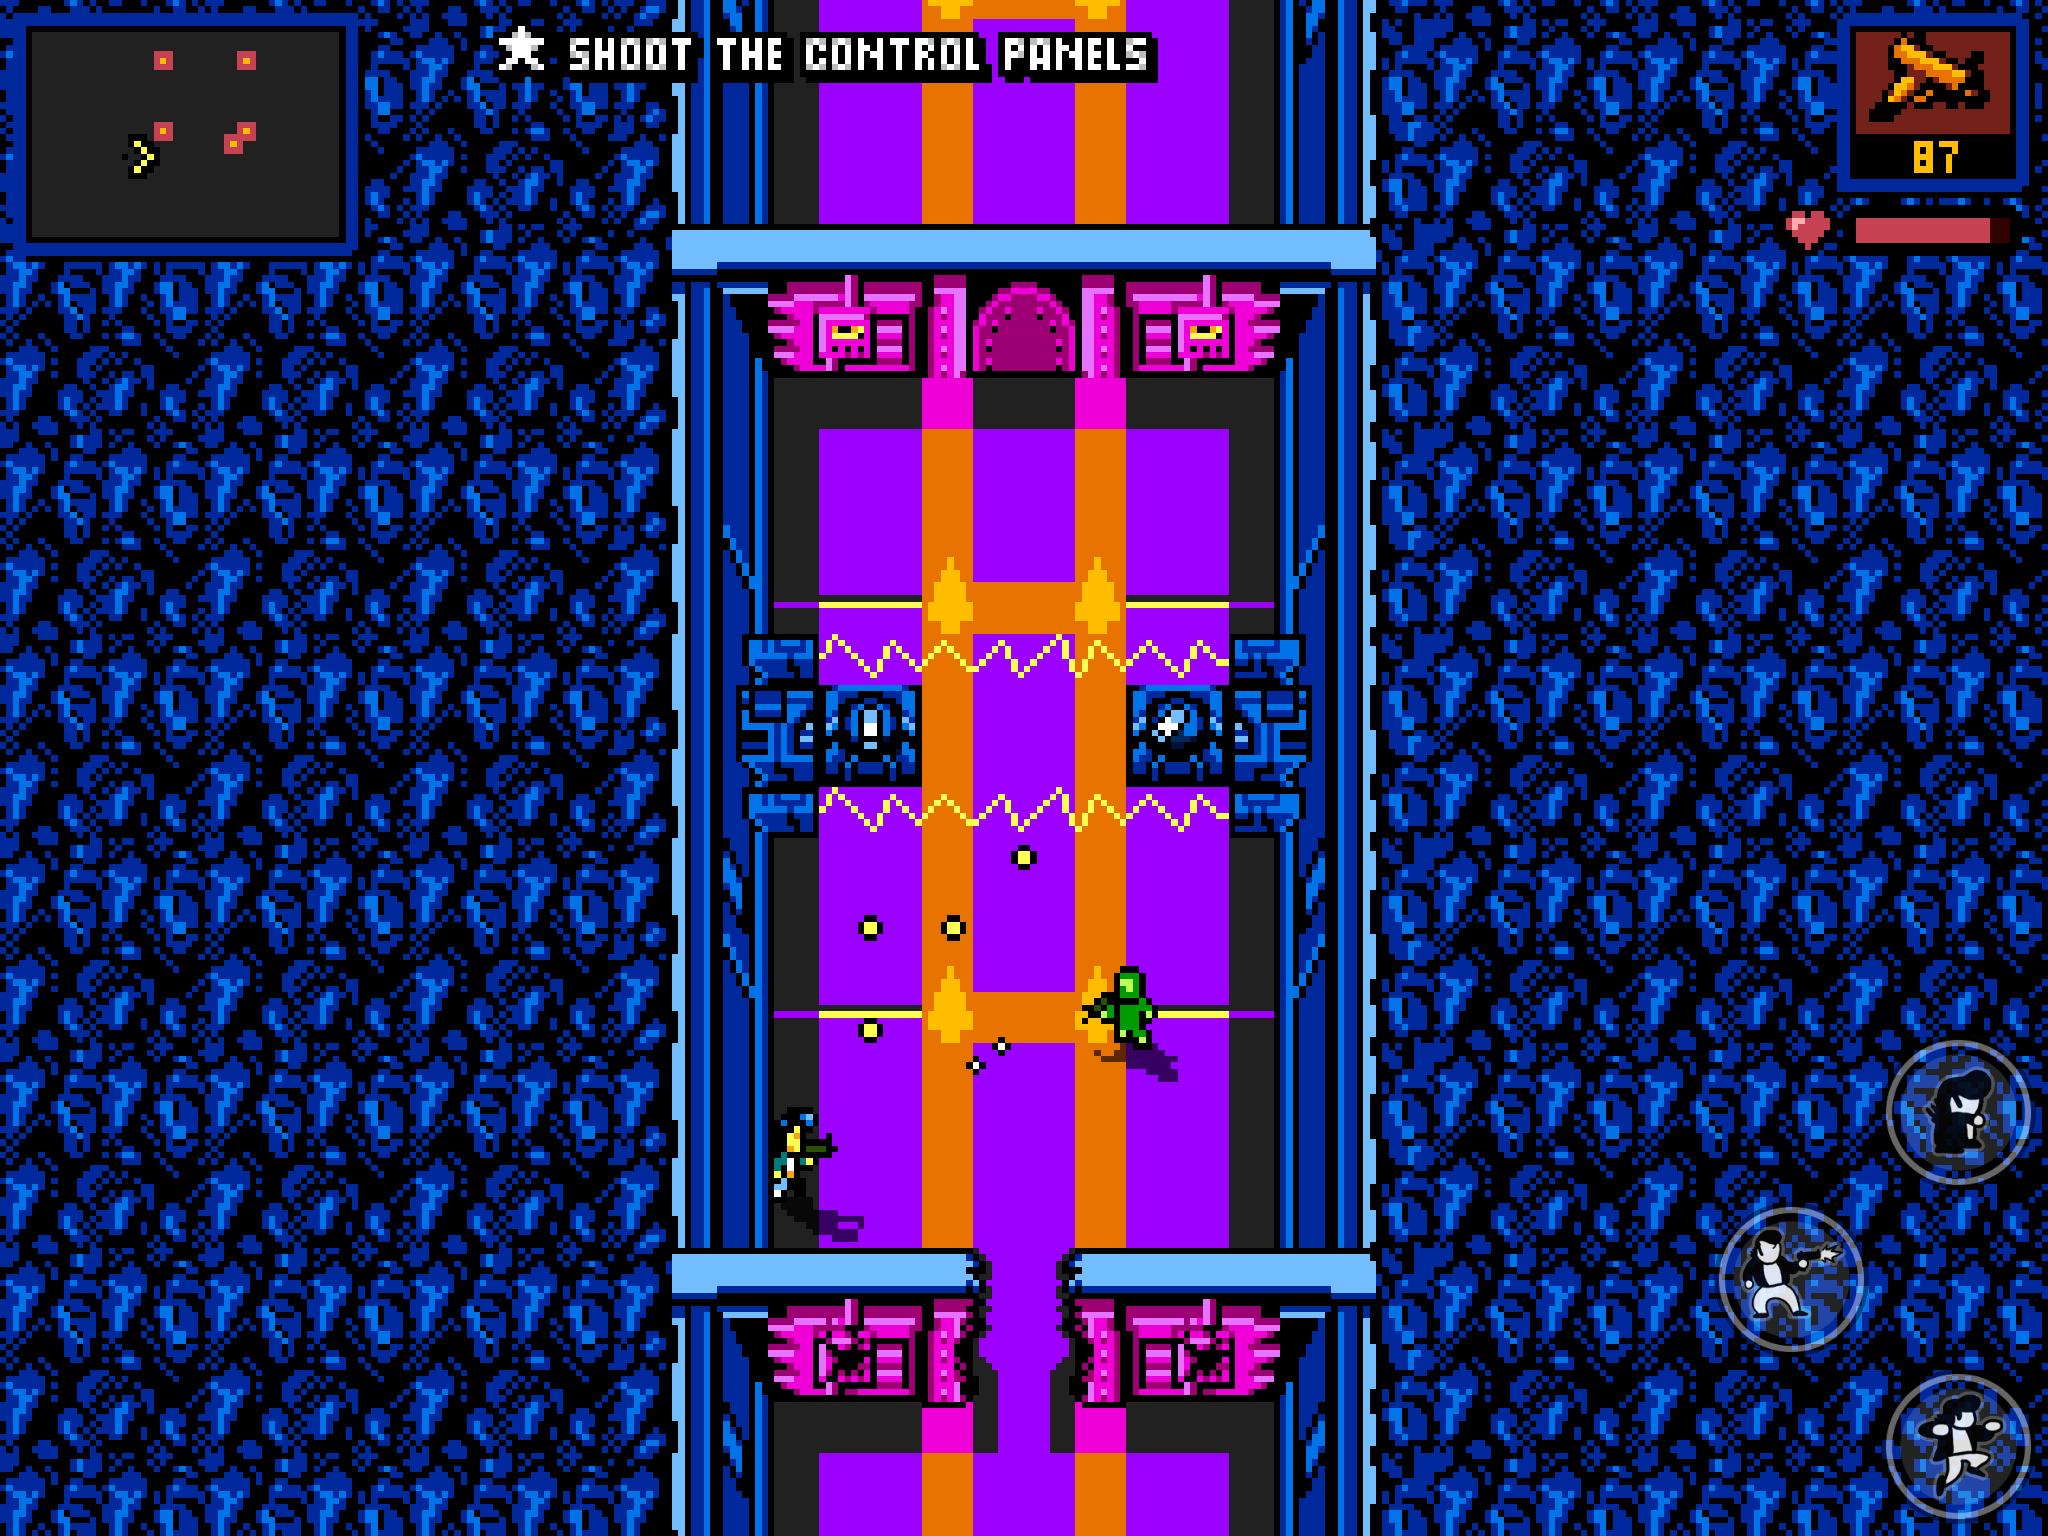 Retro City Rampage: DX - A bit like herding geese, but geese with guns